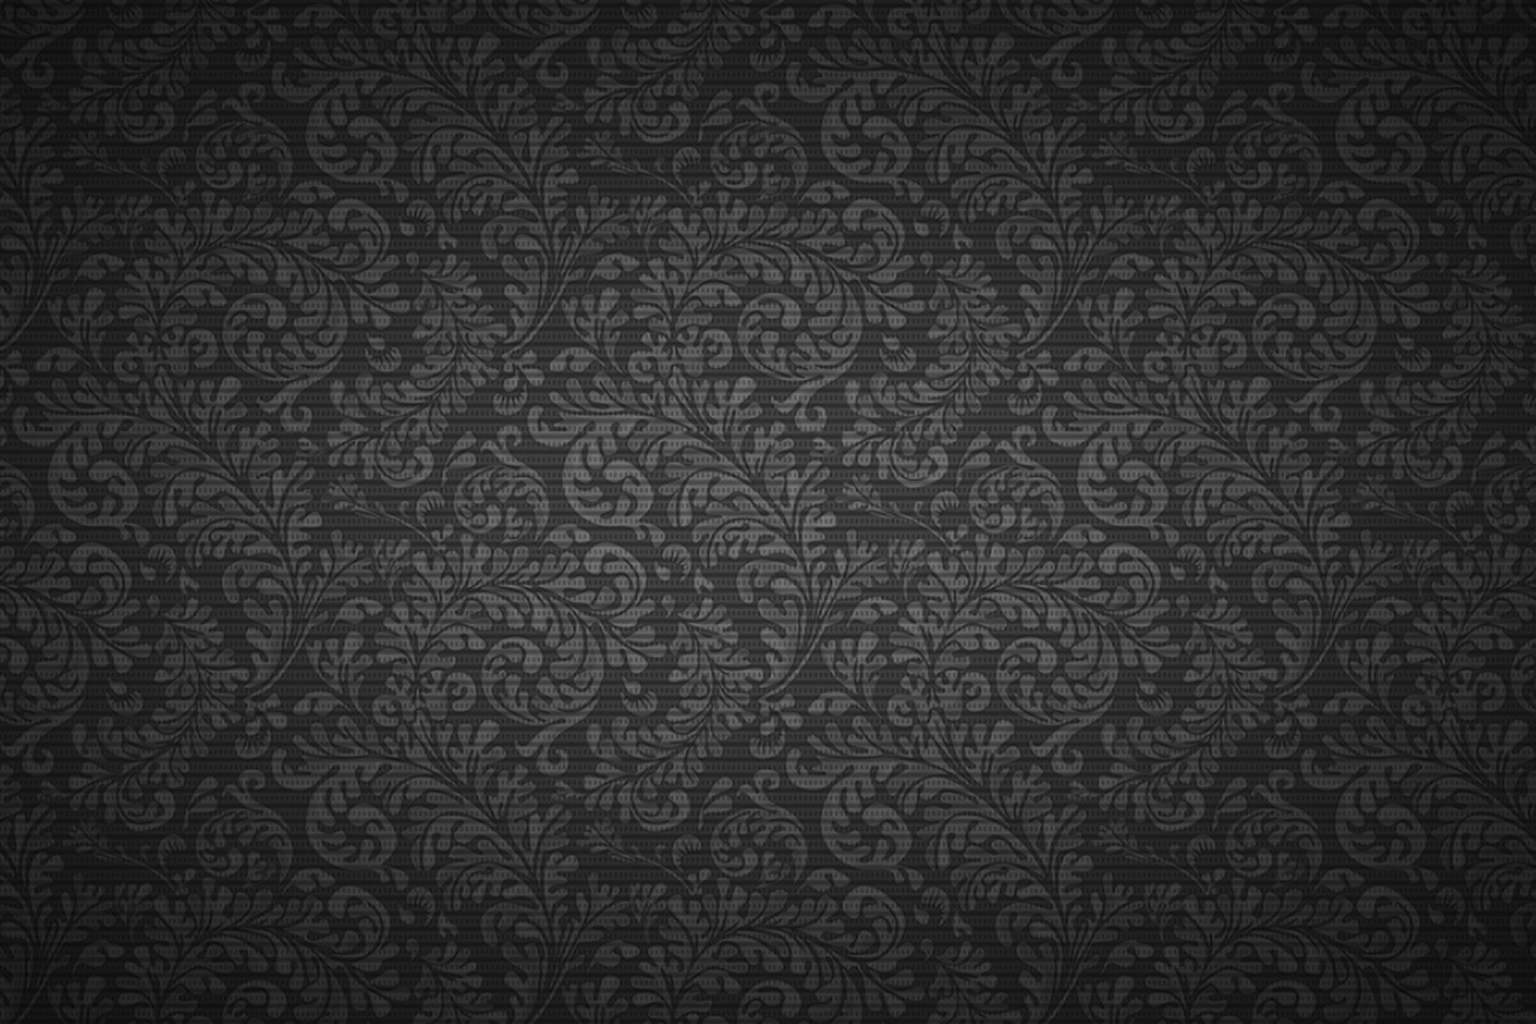 Louis Vuitton Background Black And White Scale